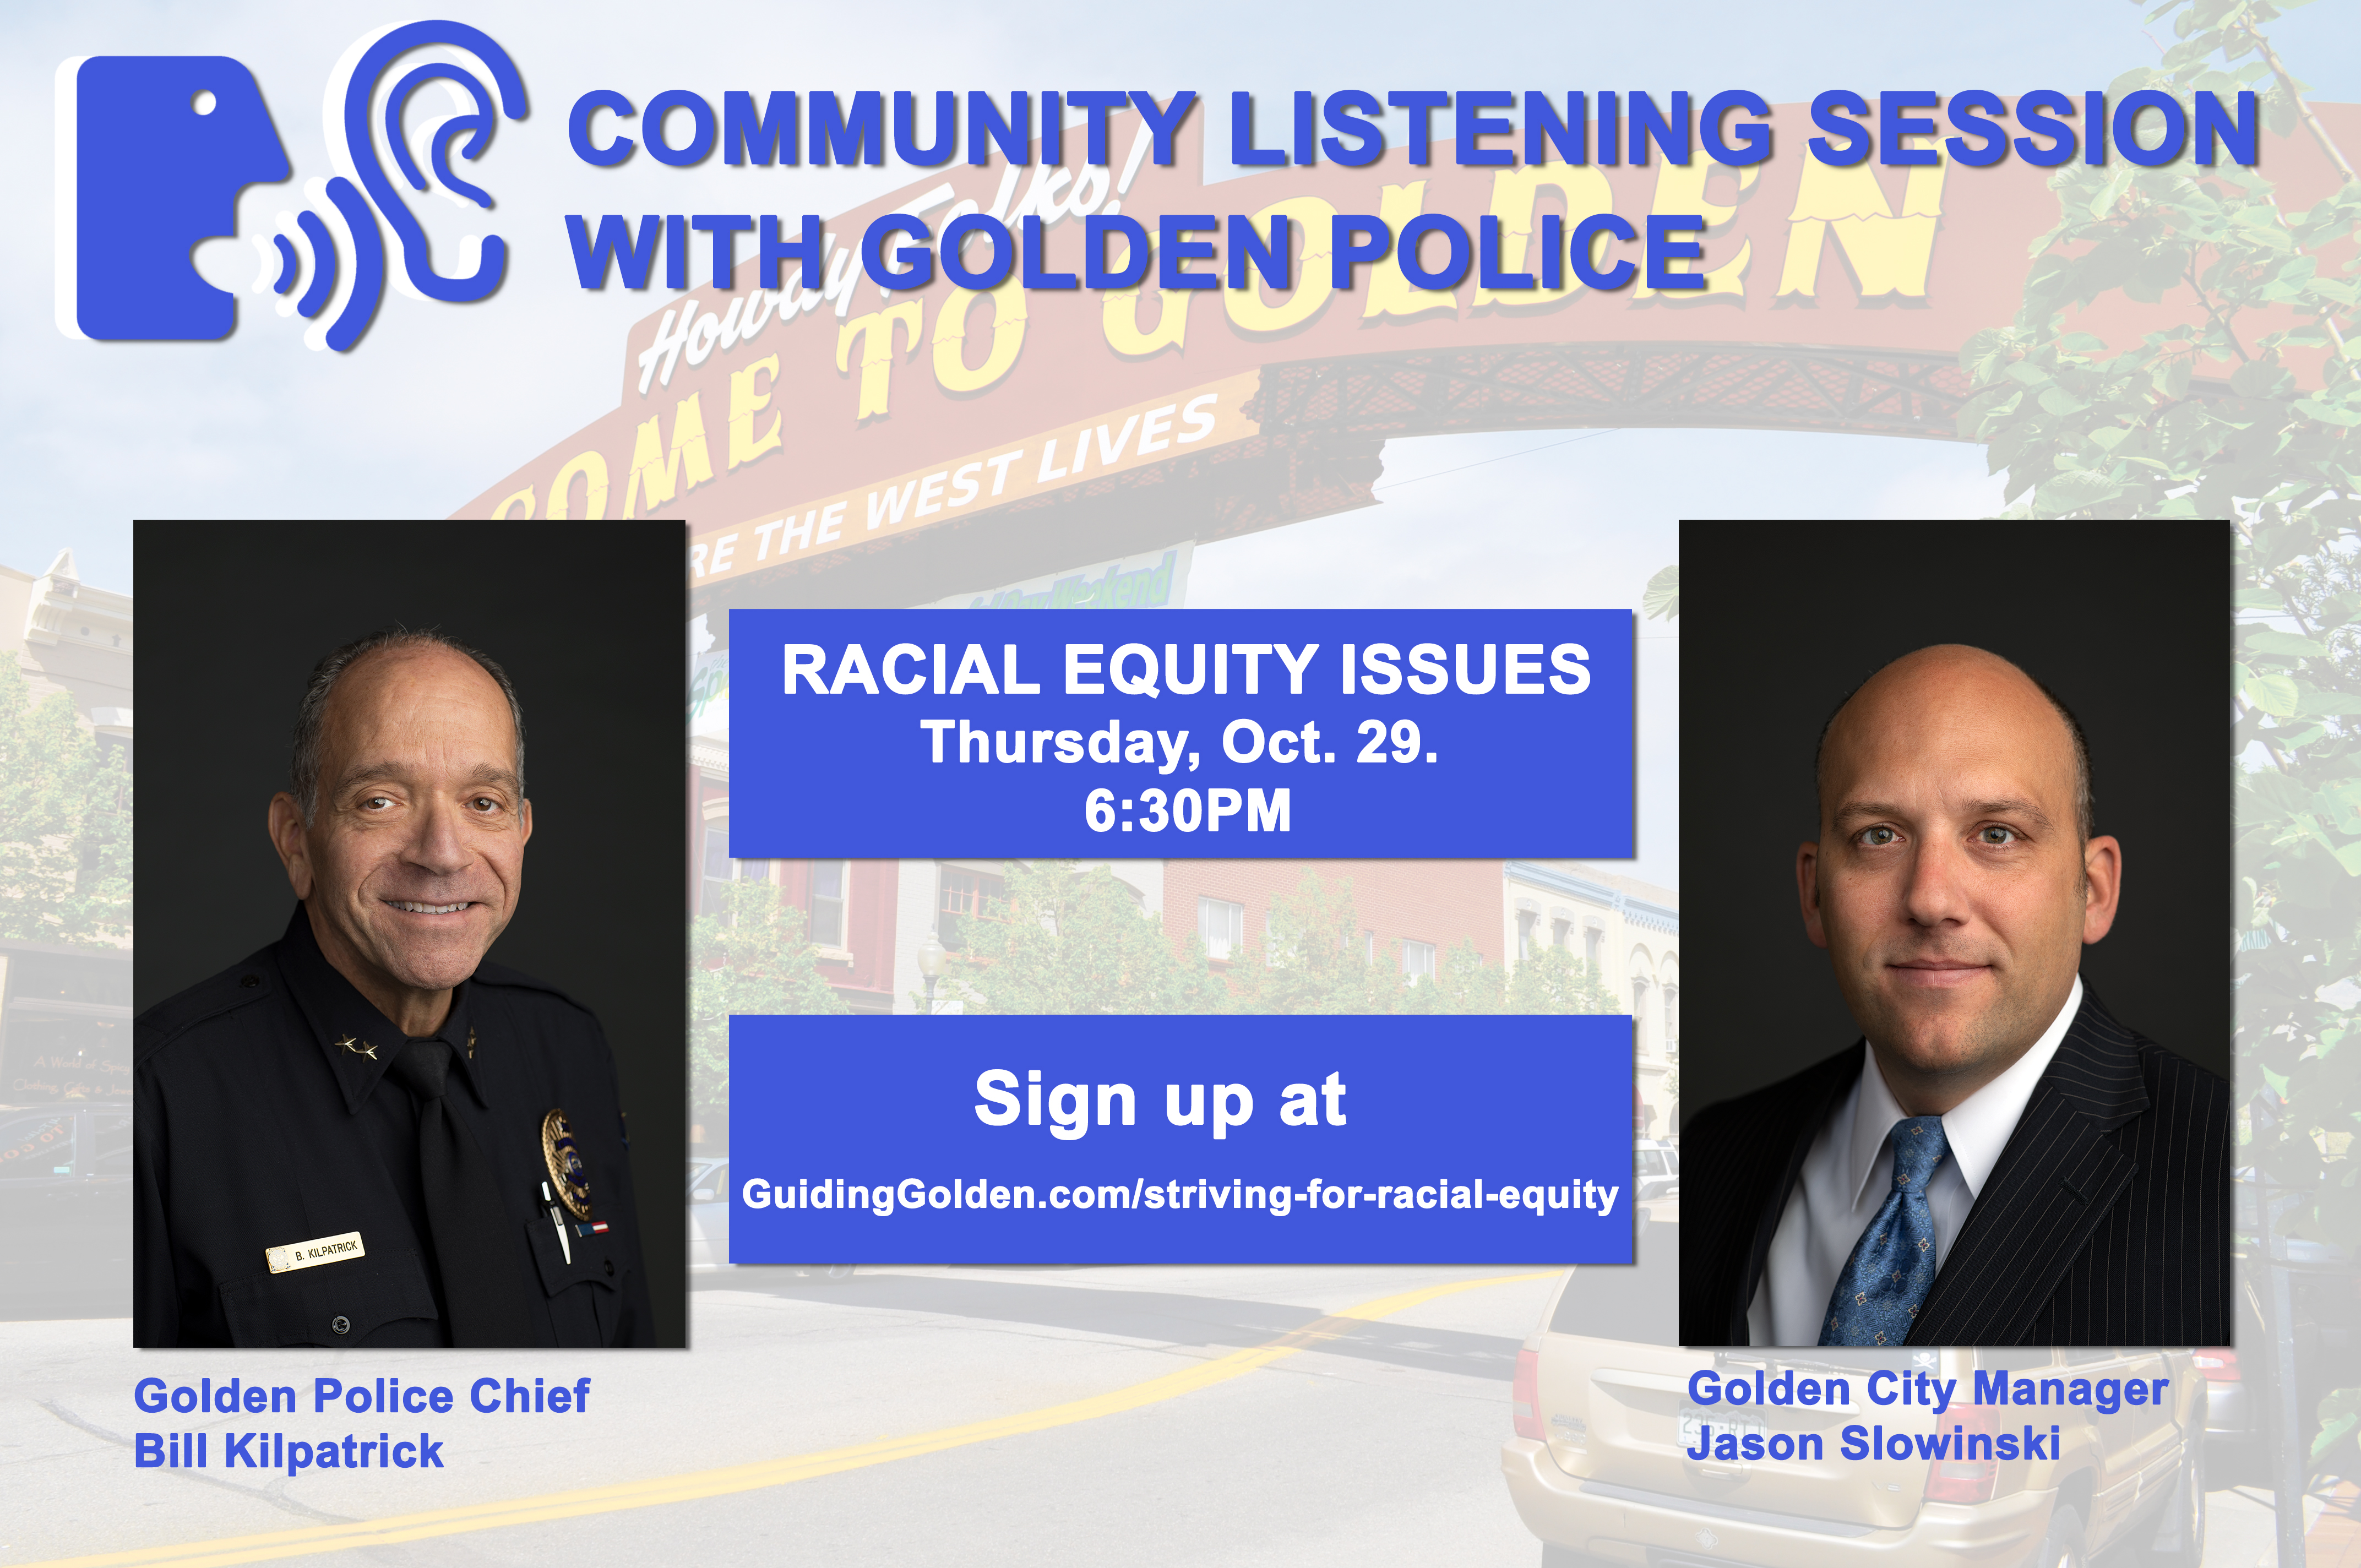 Community Listening Session with Golden Police on Thursday, October 29 at 6:30 p.m. Click on this picture to register for the session.